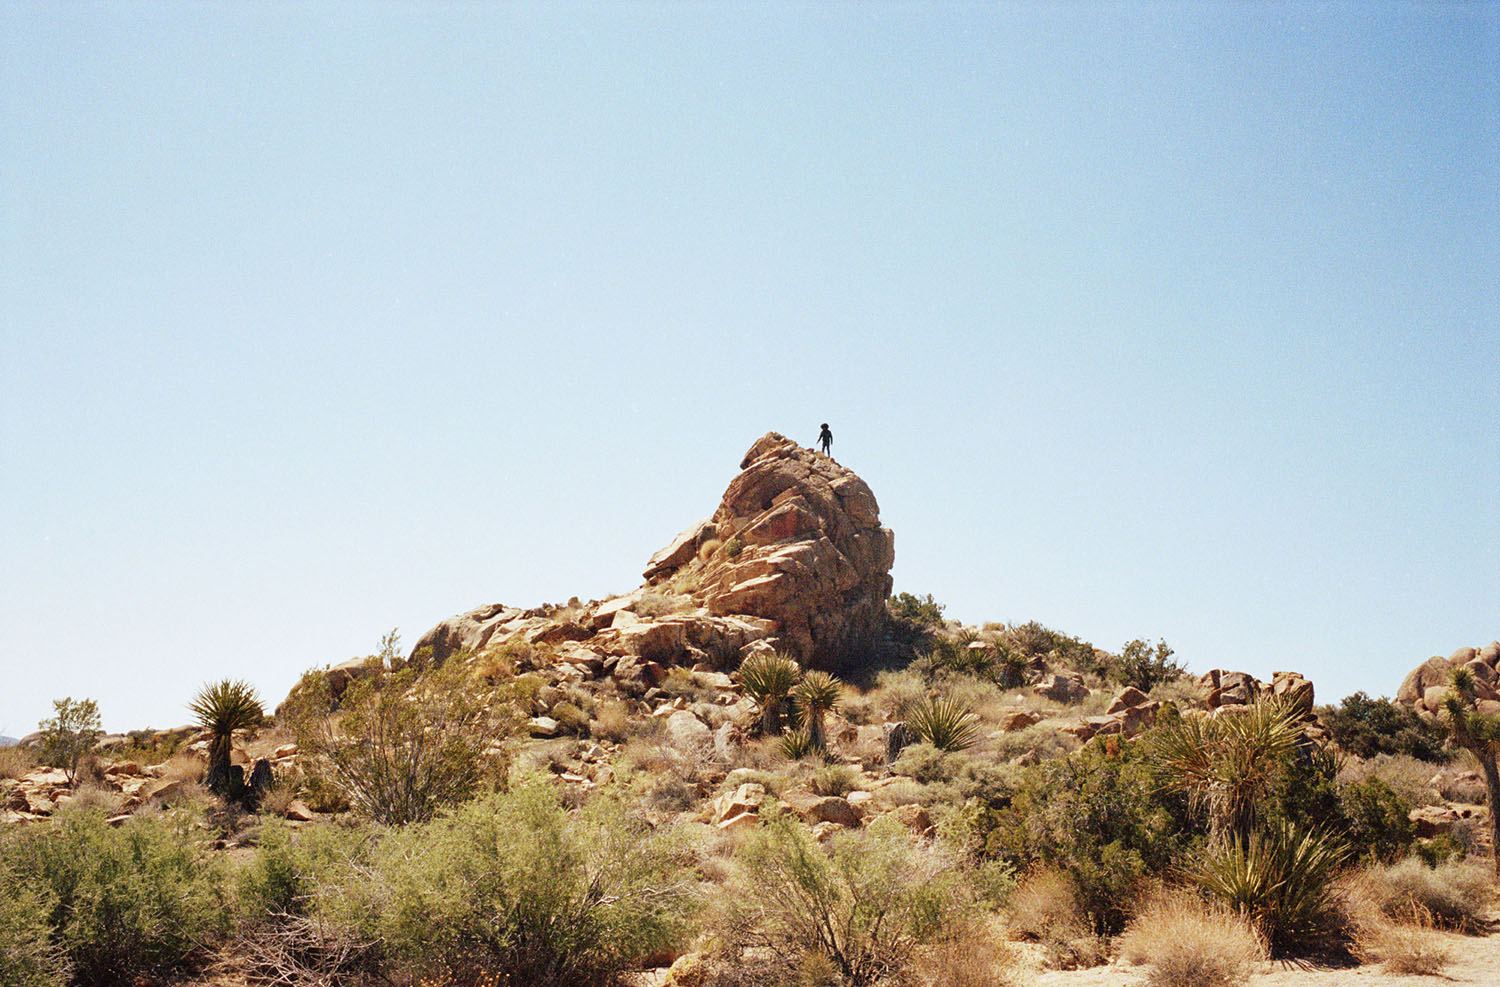 Chris McElrath, Artist, Joshua Tree, California, 2015